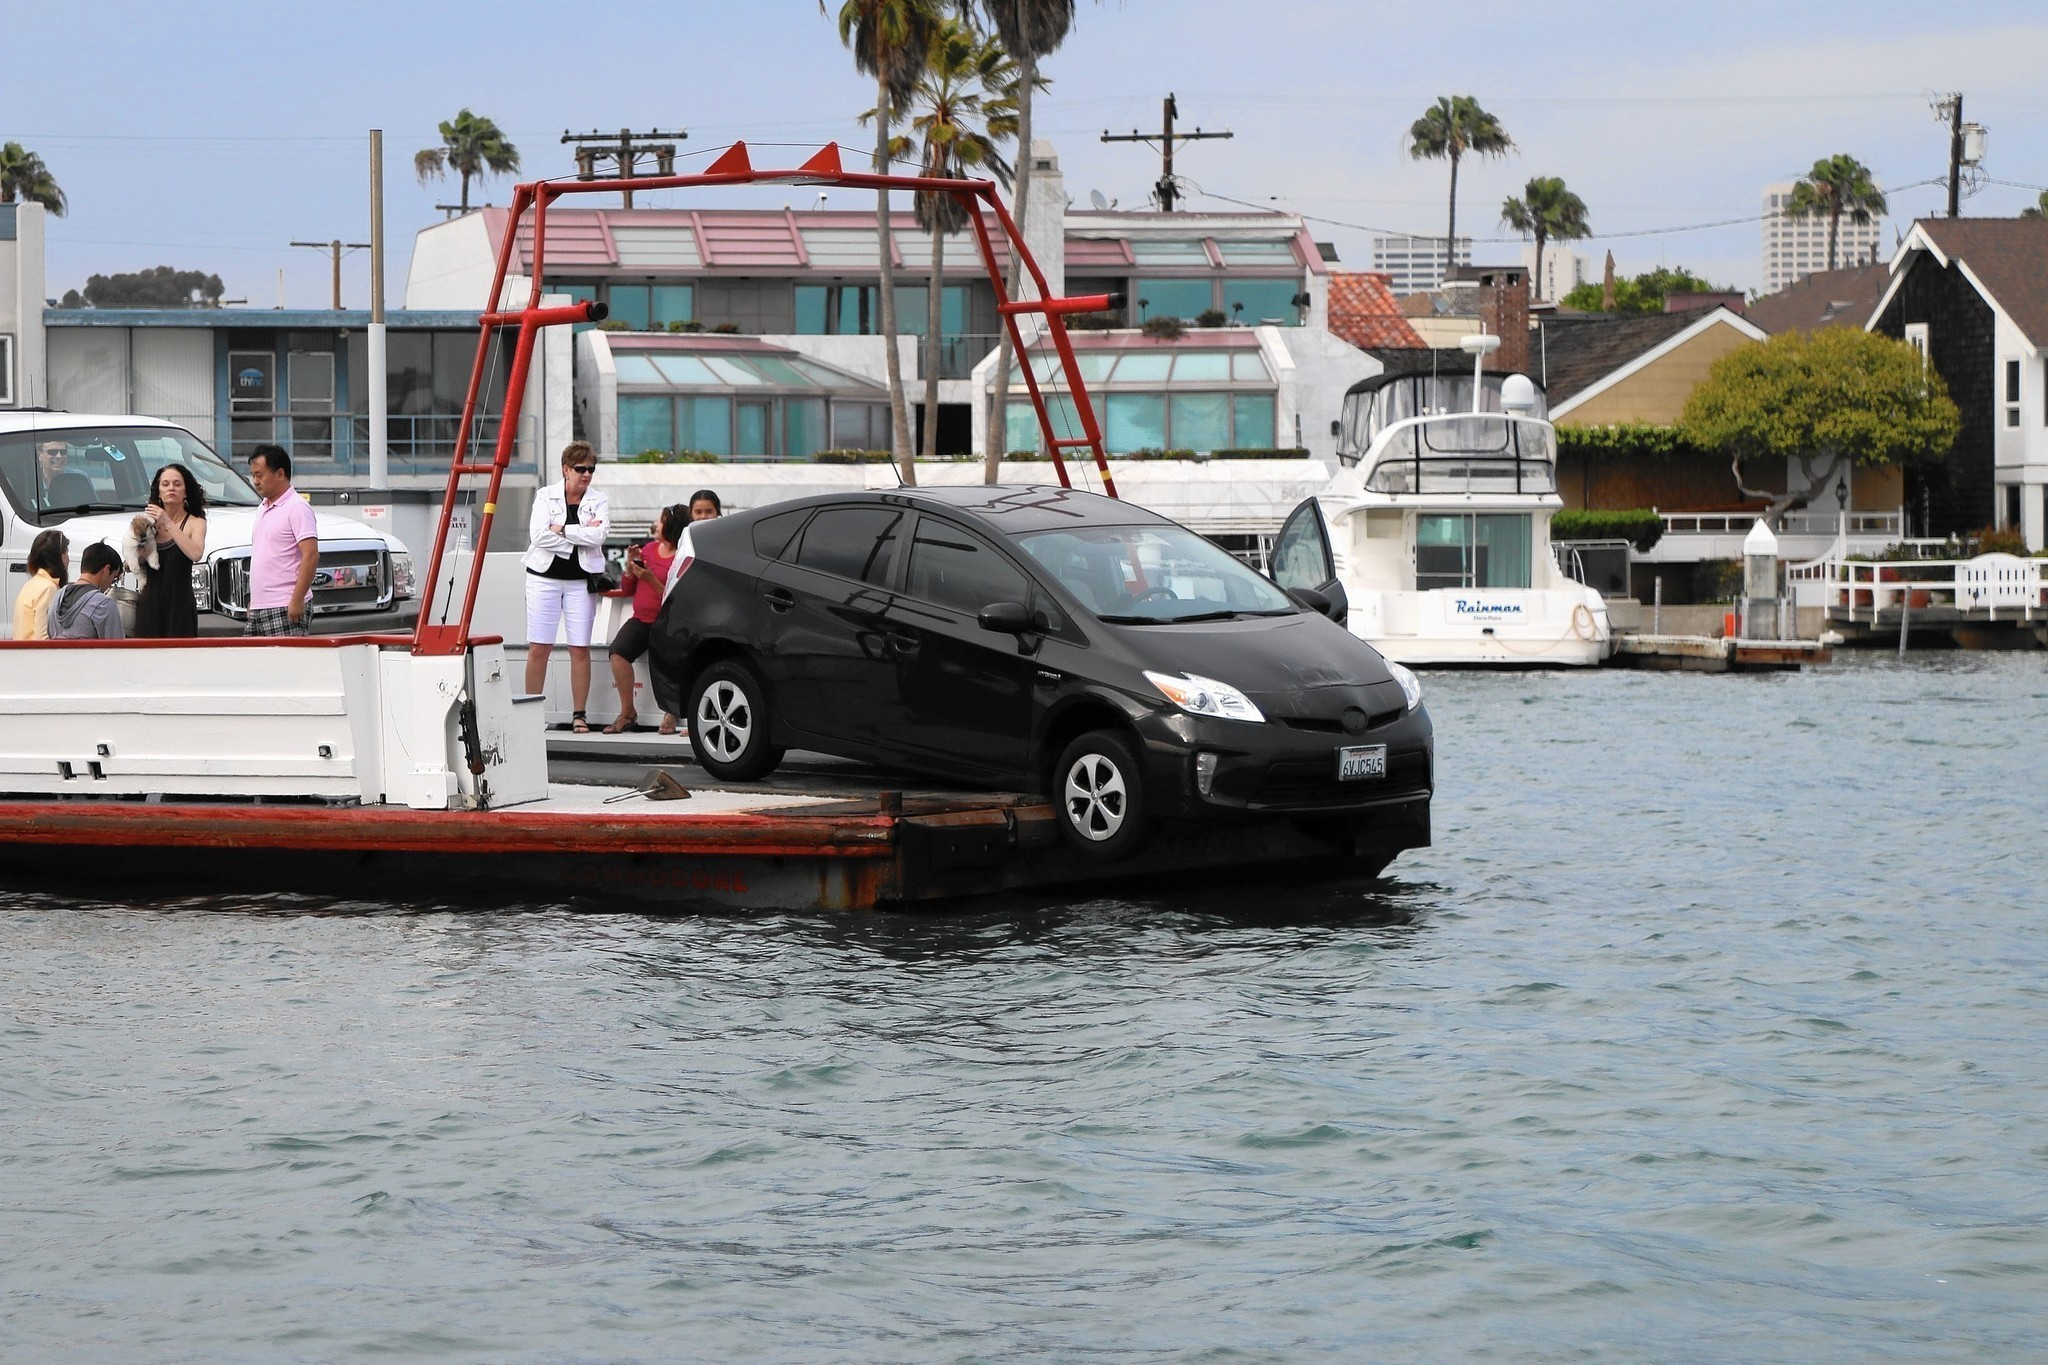 Car Nearly Falls Off Balboa Ferry After Lurching Through